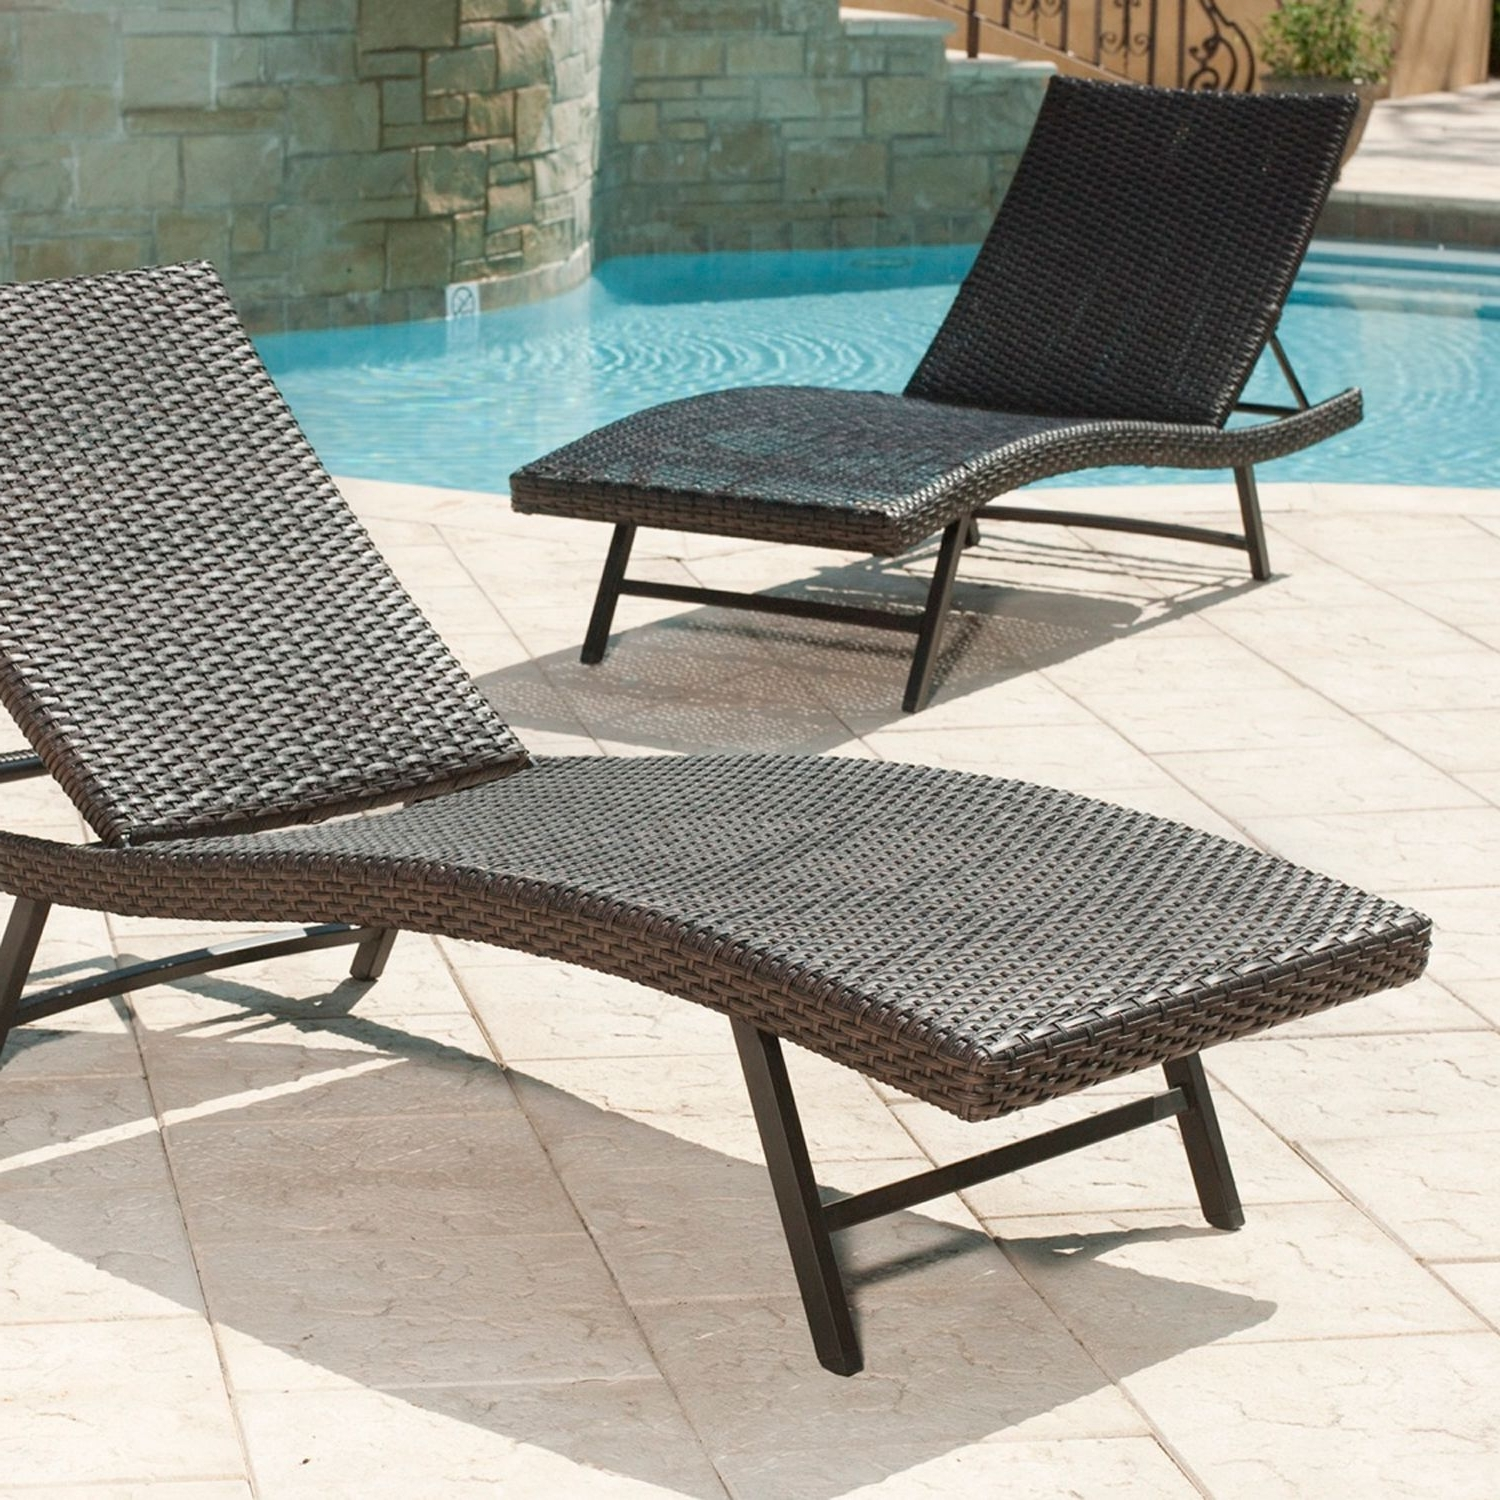 Best And Newest Lounge Chair : Furniture Outdoor Double Chaise Outdoor Pool Chaise Regarding Outdoor Pool Furniture Chaise Lounges (View 10 of 15)